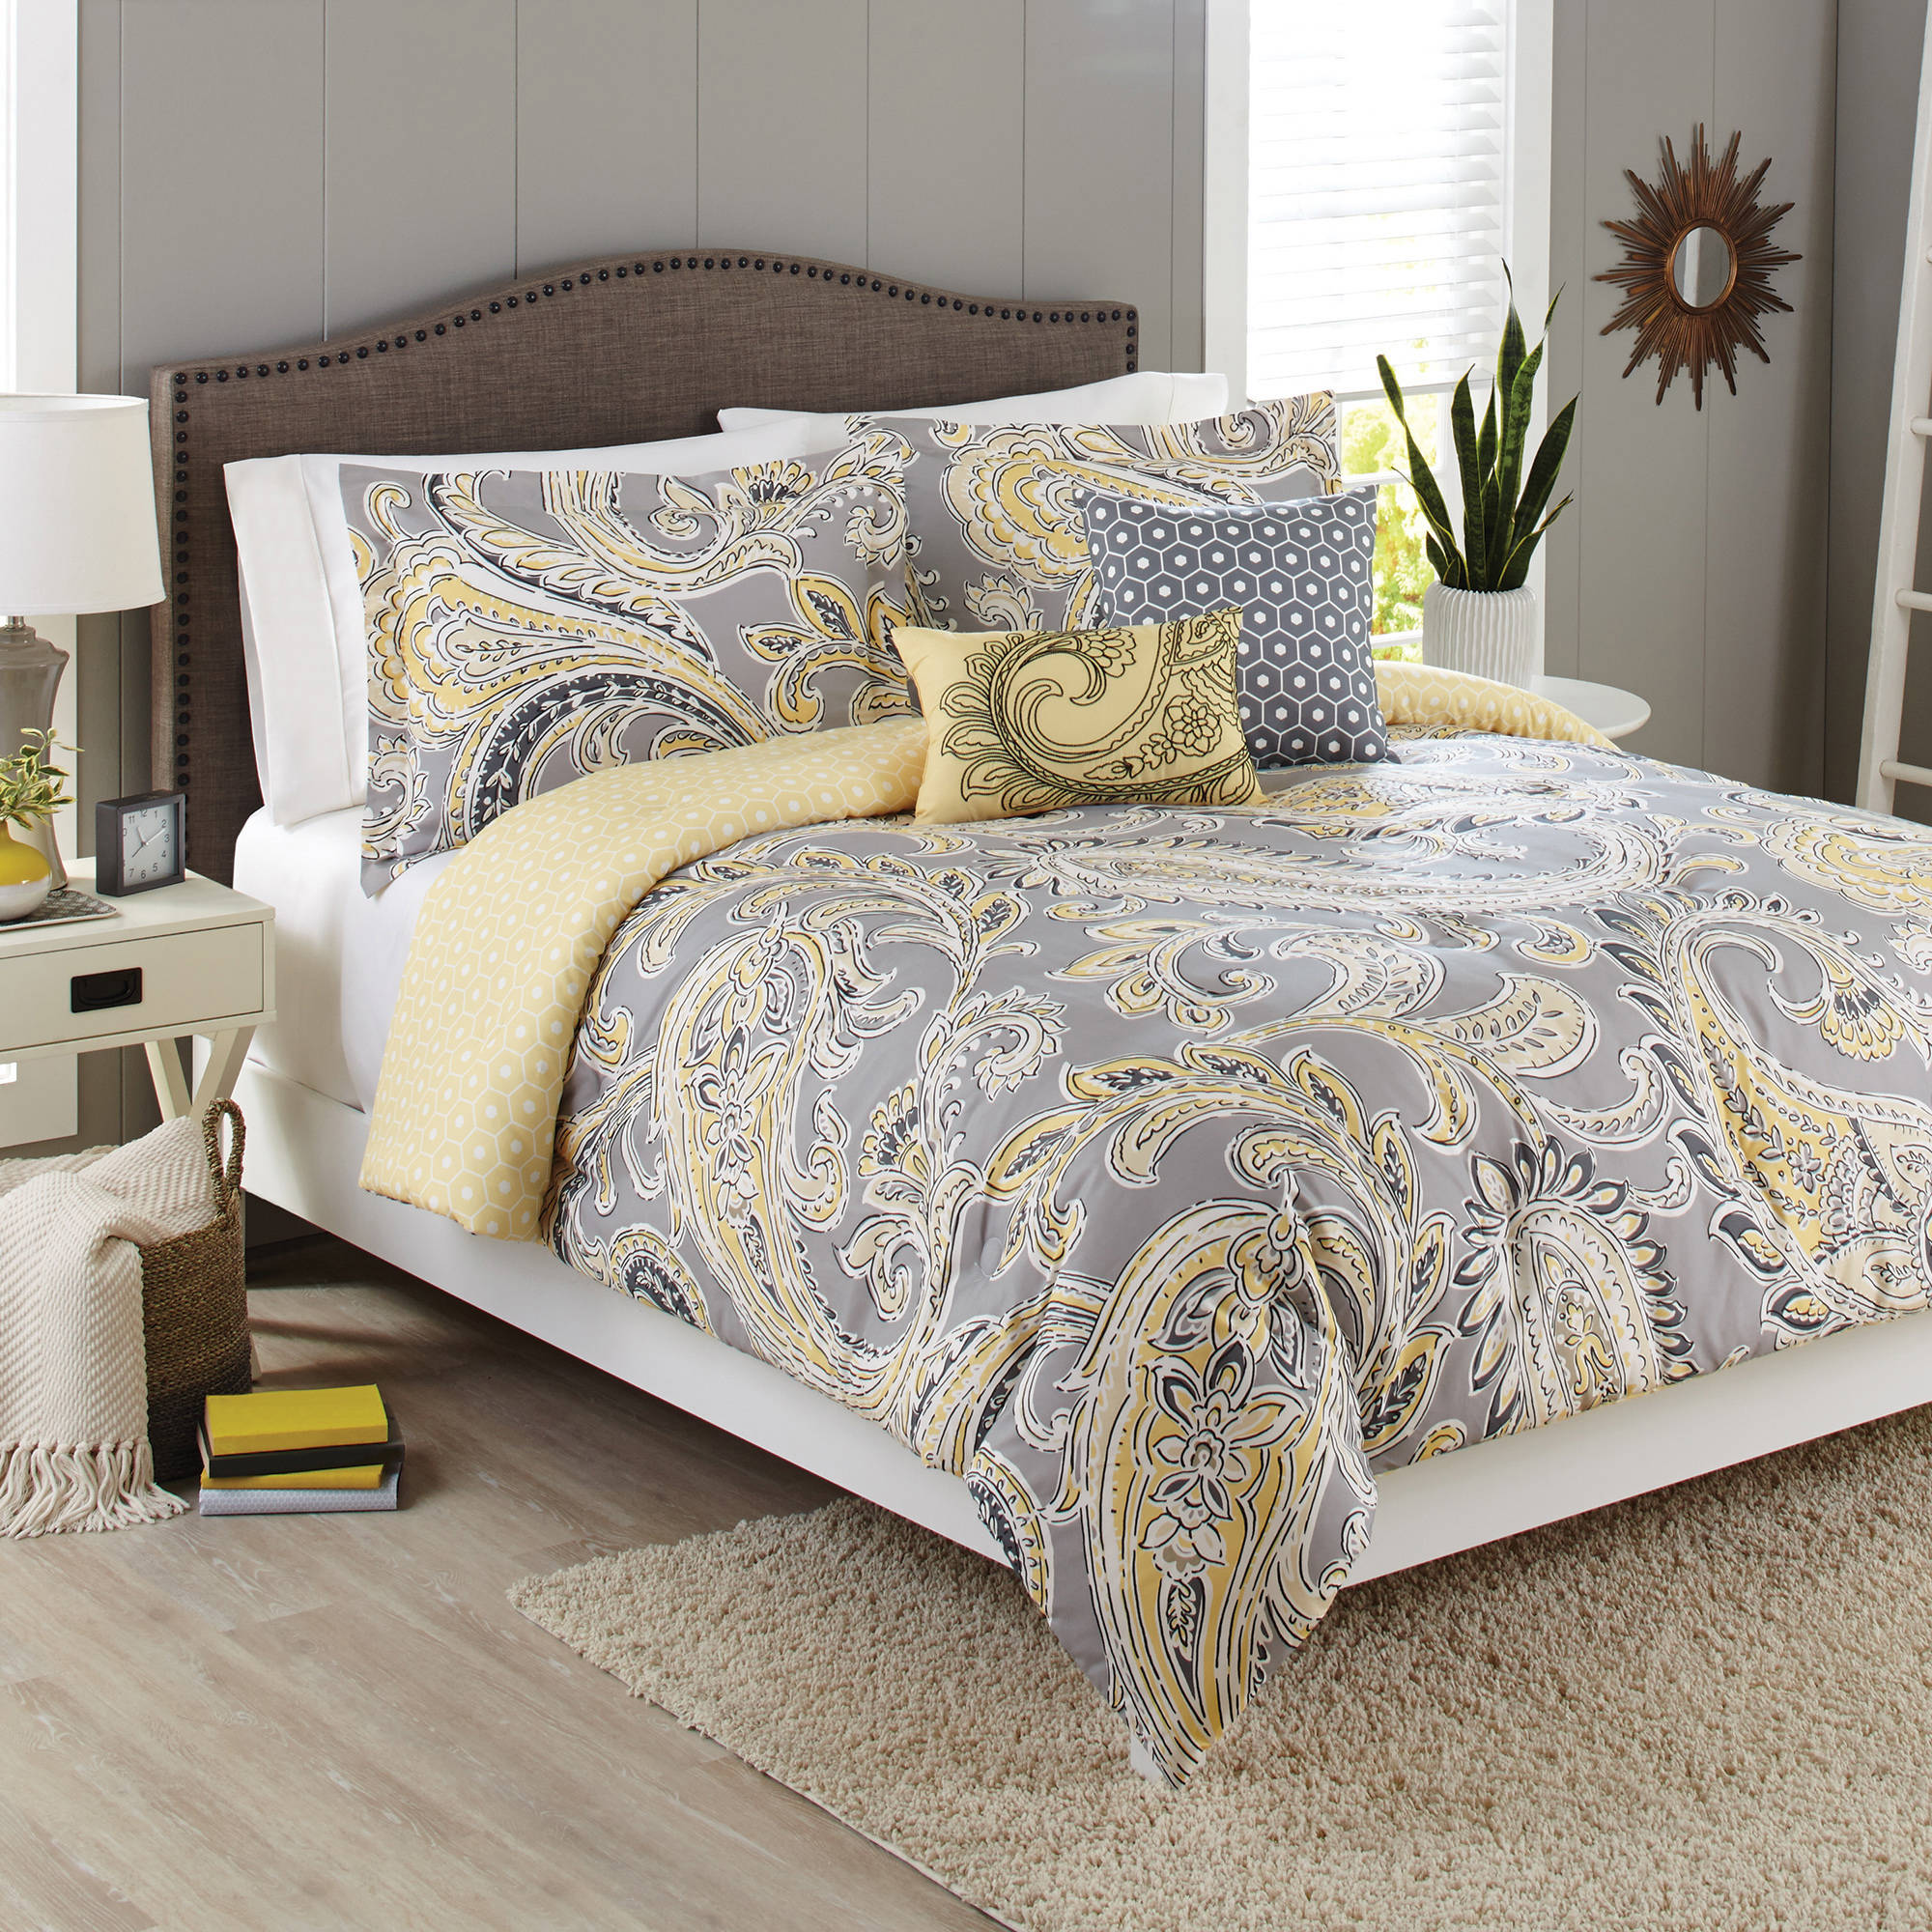 milano comforter free set bedding hotel shipping product bath sets today overstock